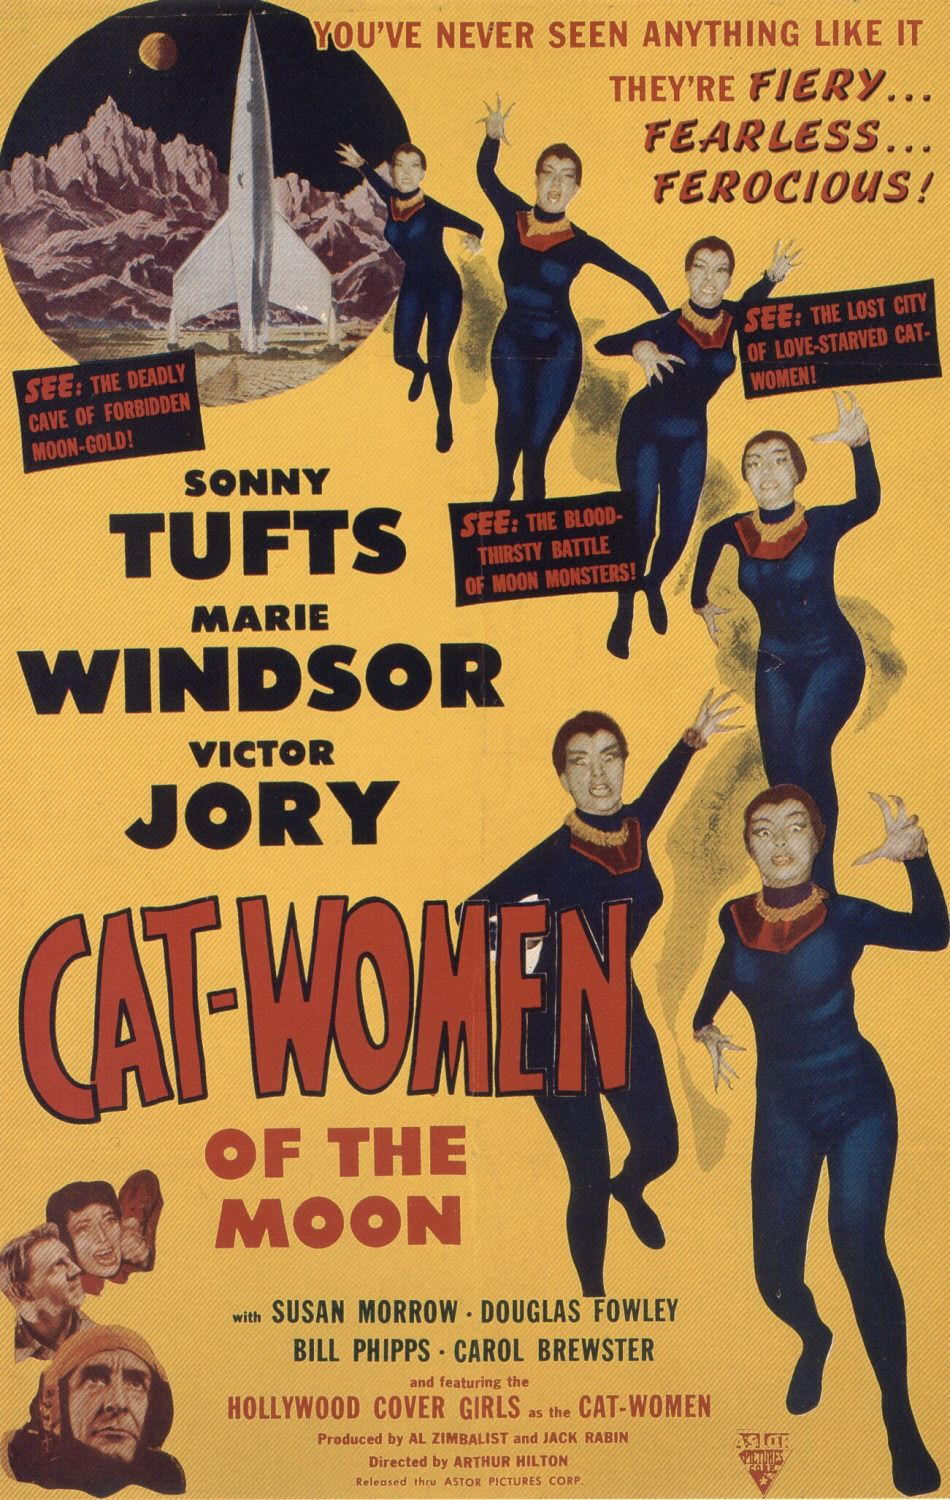 cat_women_of_the_moon_poster_1953_01.jpg